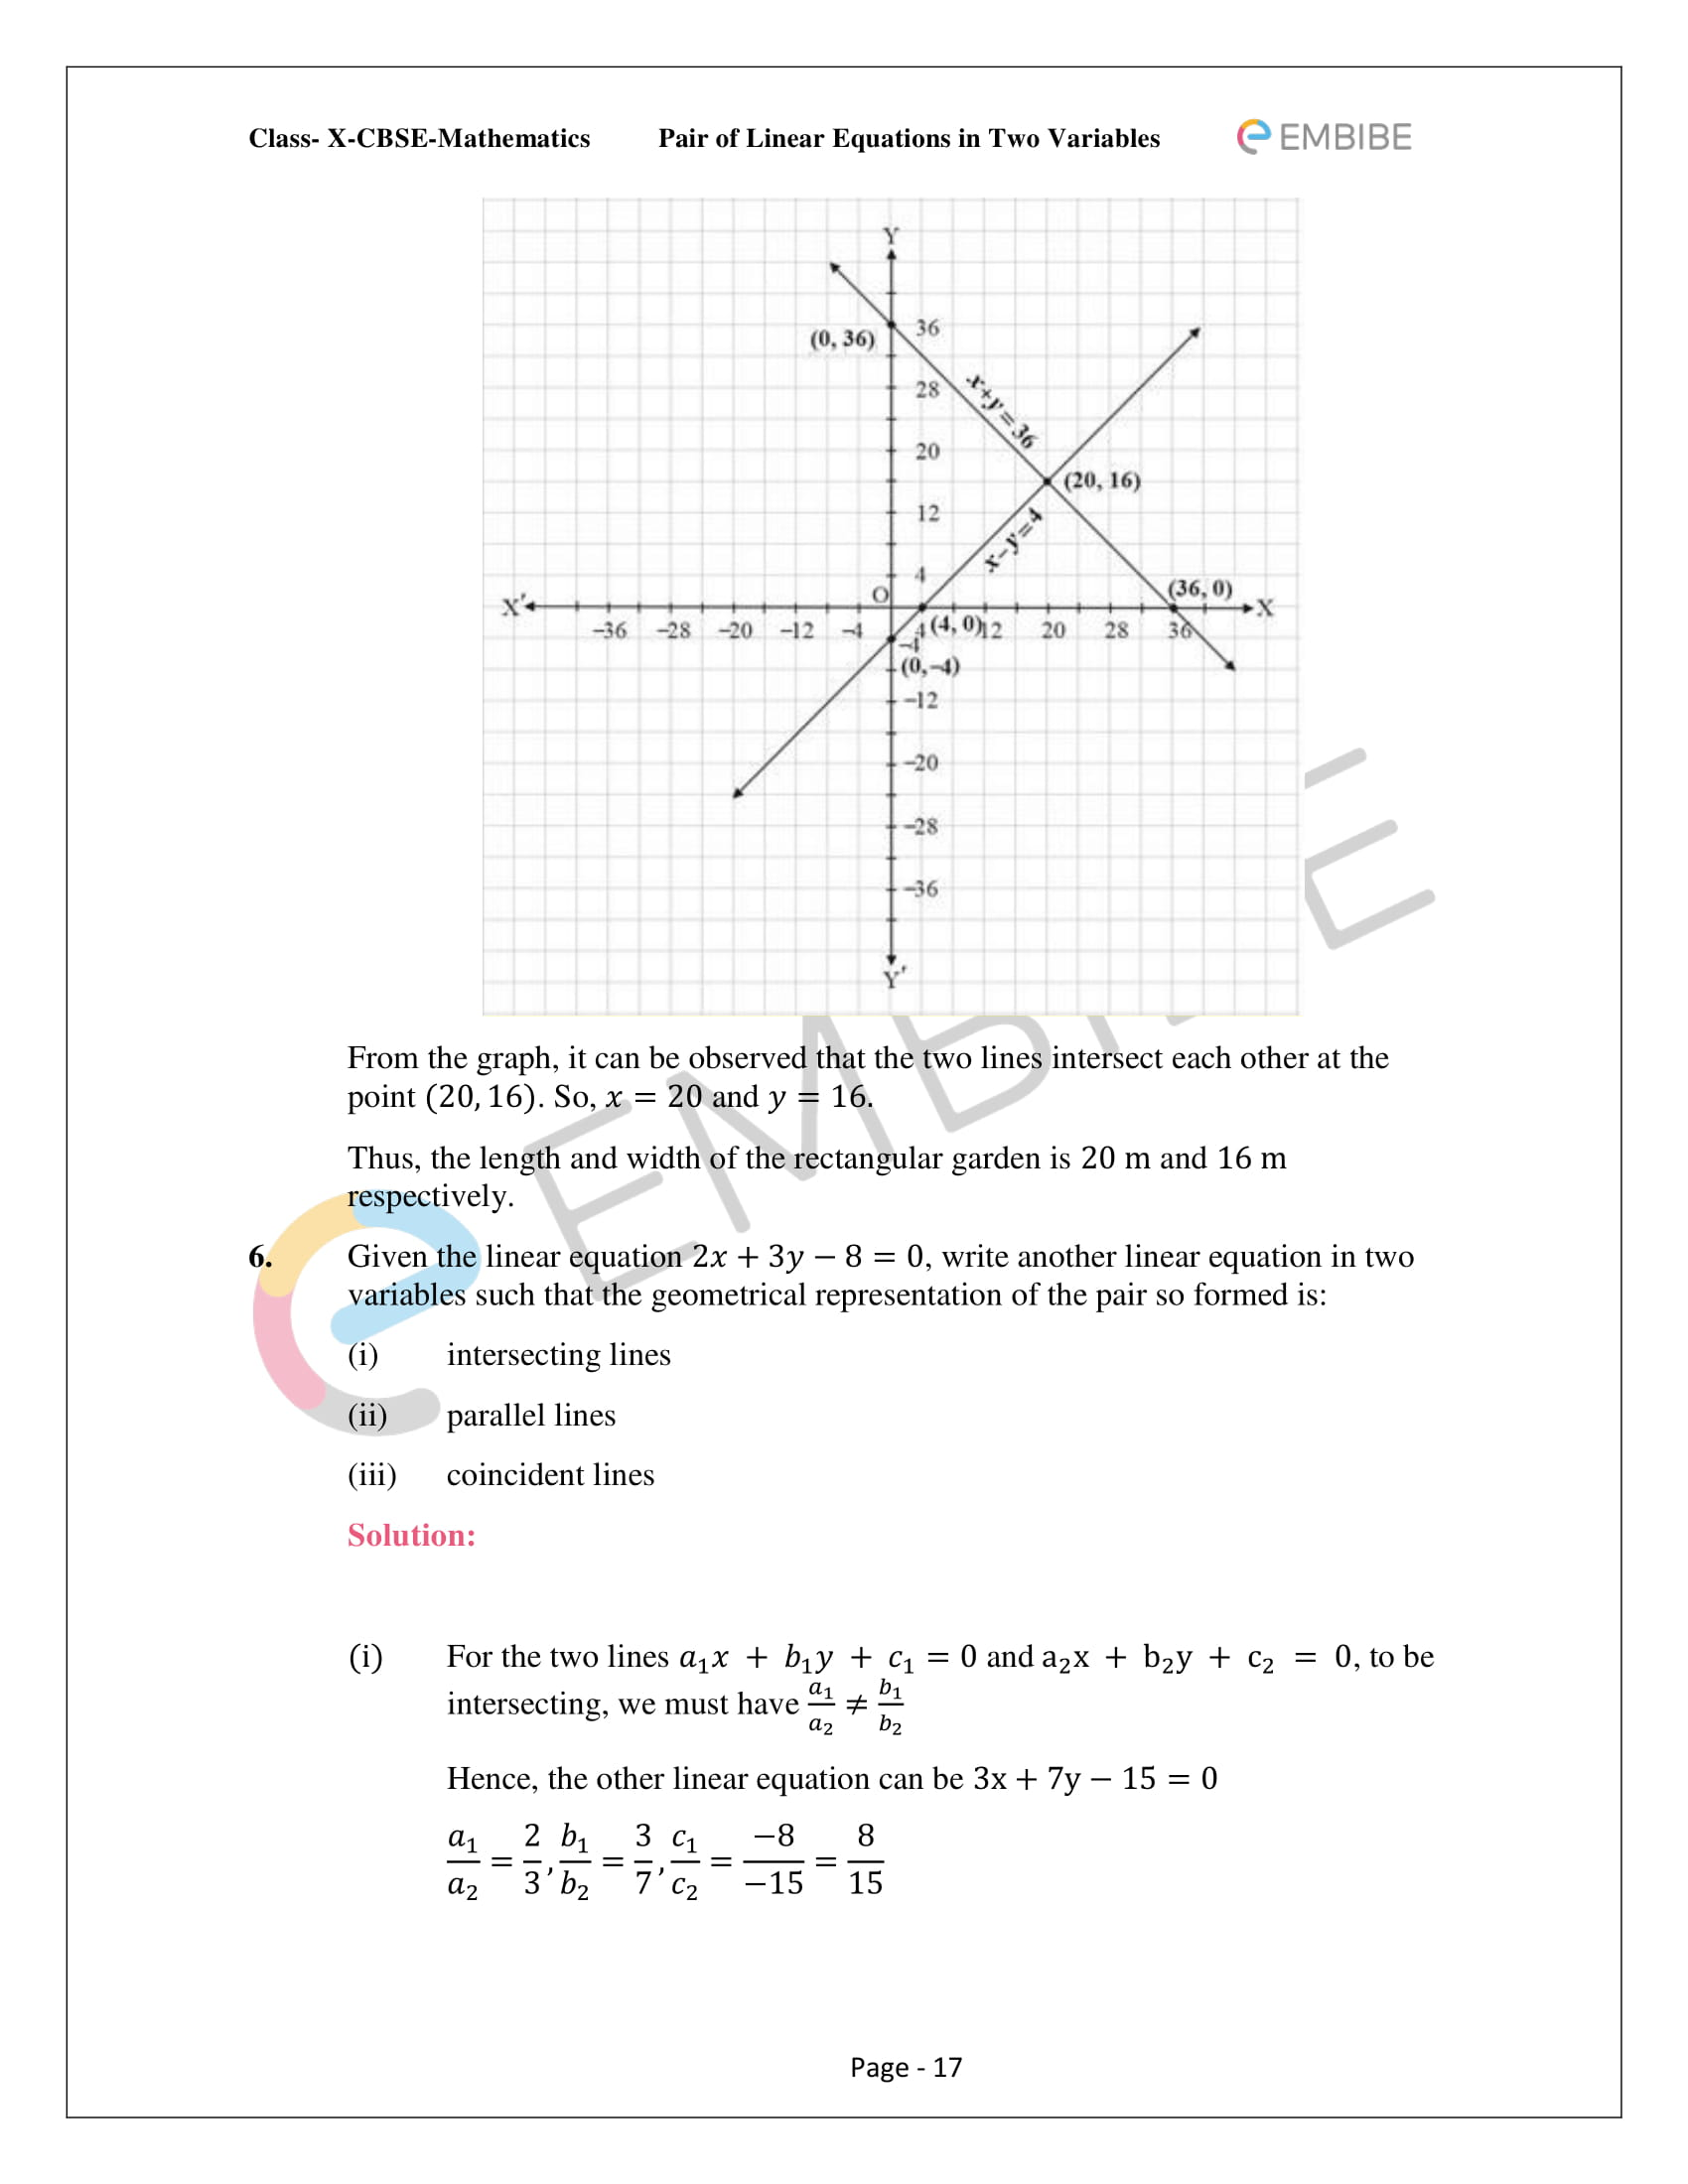 CBSE NCERT Solutions For Class 10 Maths Chapter 3 - Pair of Linear Equations In Two Variables - 17